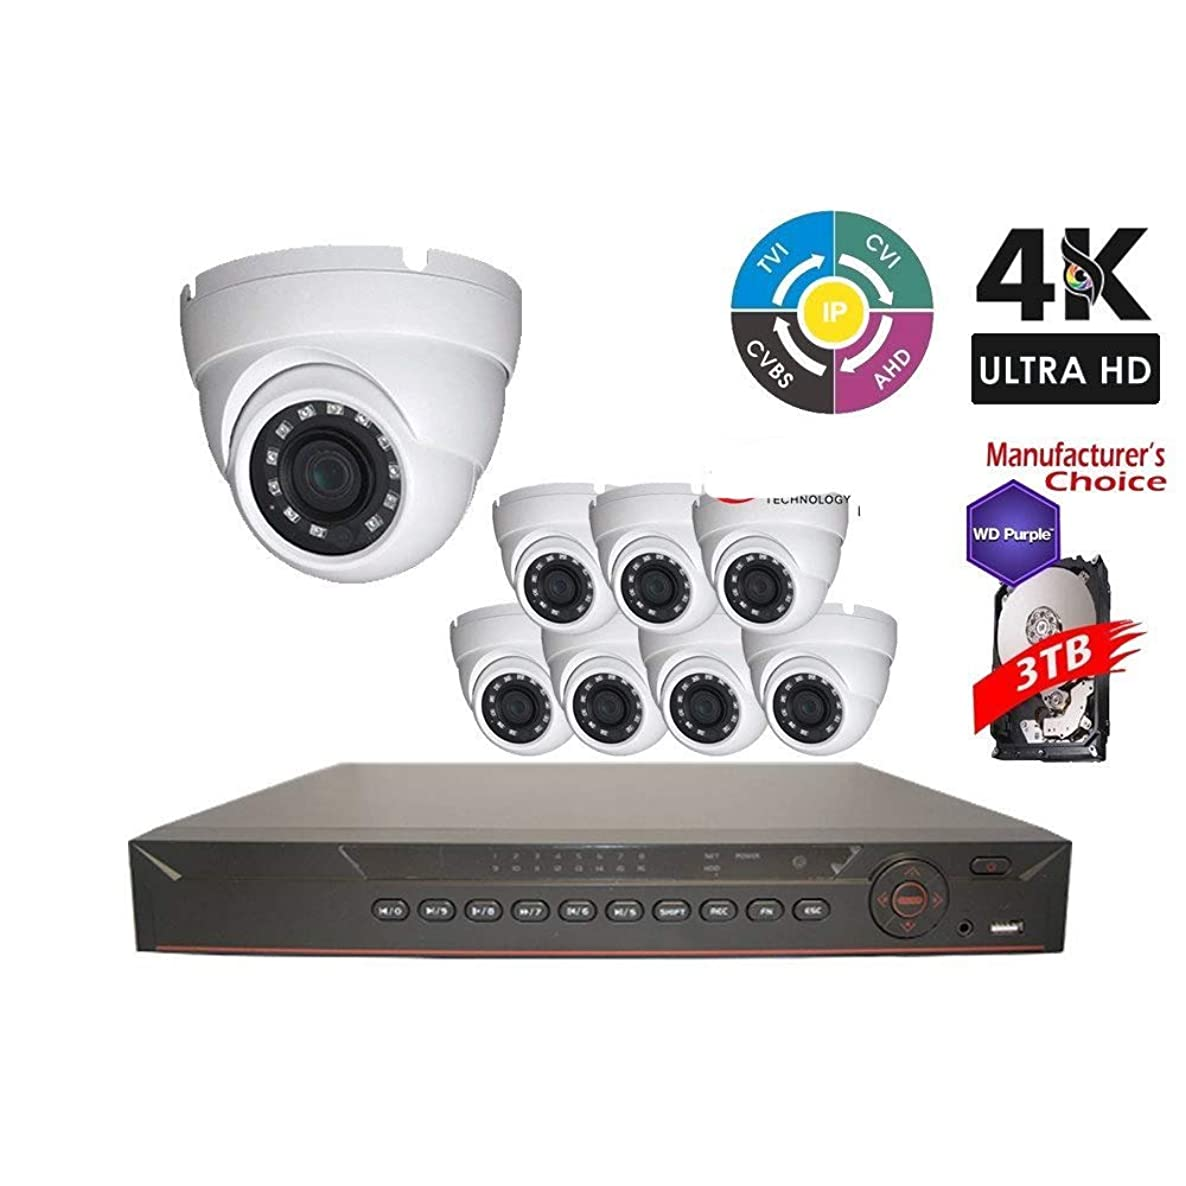 Dahua OEM Penta-brid 4K Security Package: 16CH 4K XVR5216-4K 5 in 1 (CVI TVI AHD IP and Analog) w/3TB Security Hard Drive+(8) 4MP Outdoor HDW1400 2.8MM Eyeball (NO LOGO OEM Local Support)